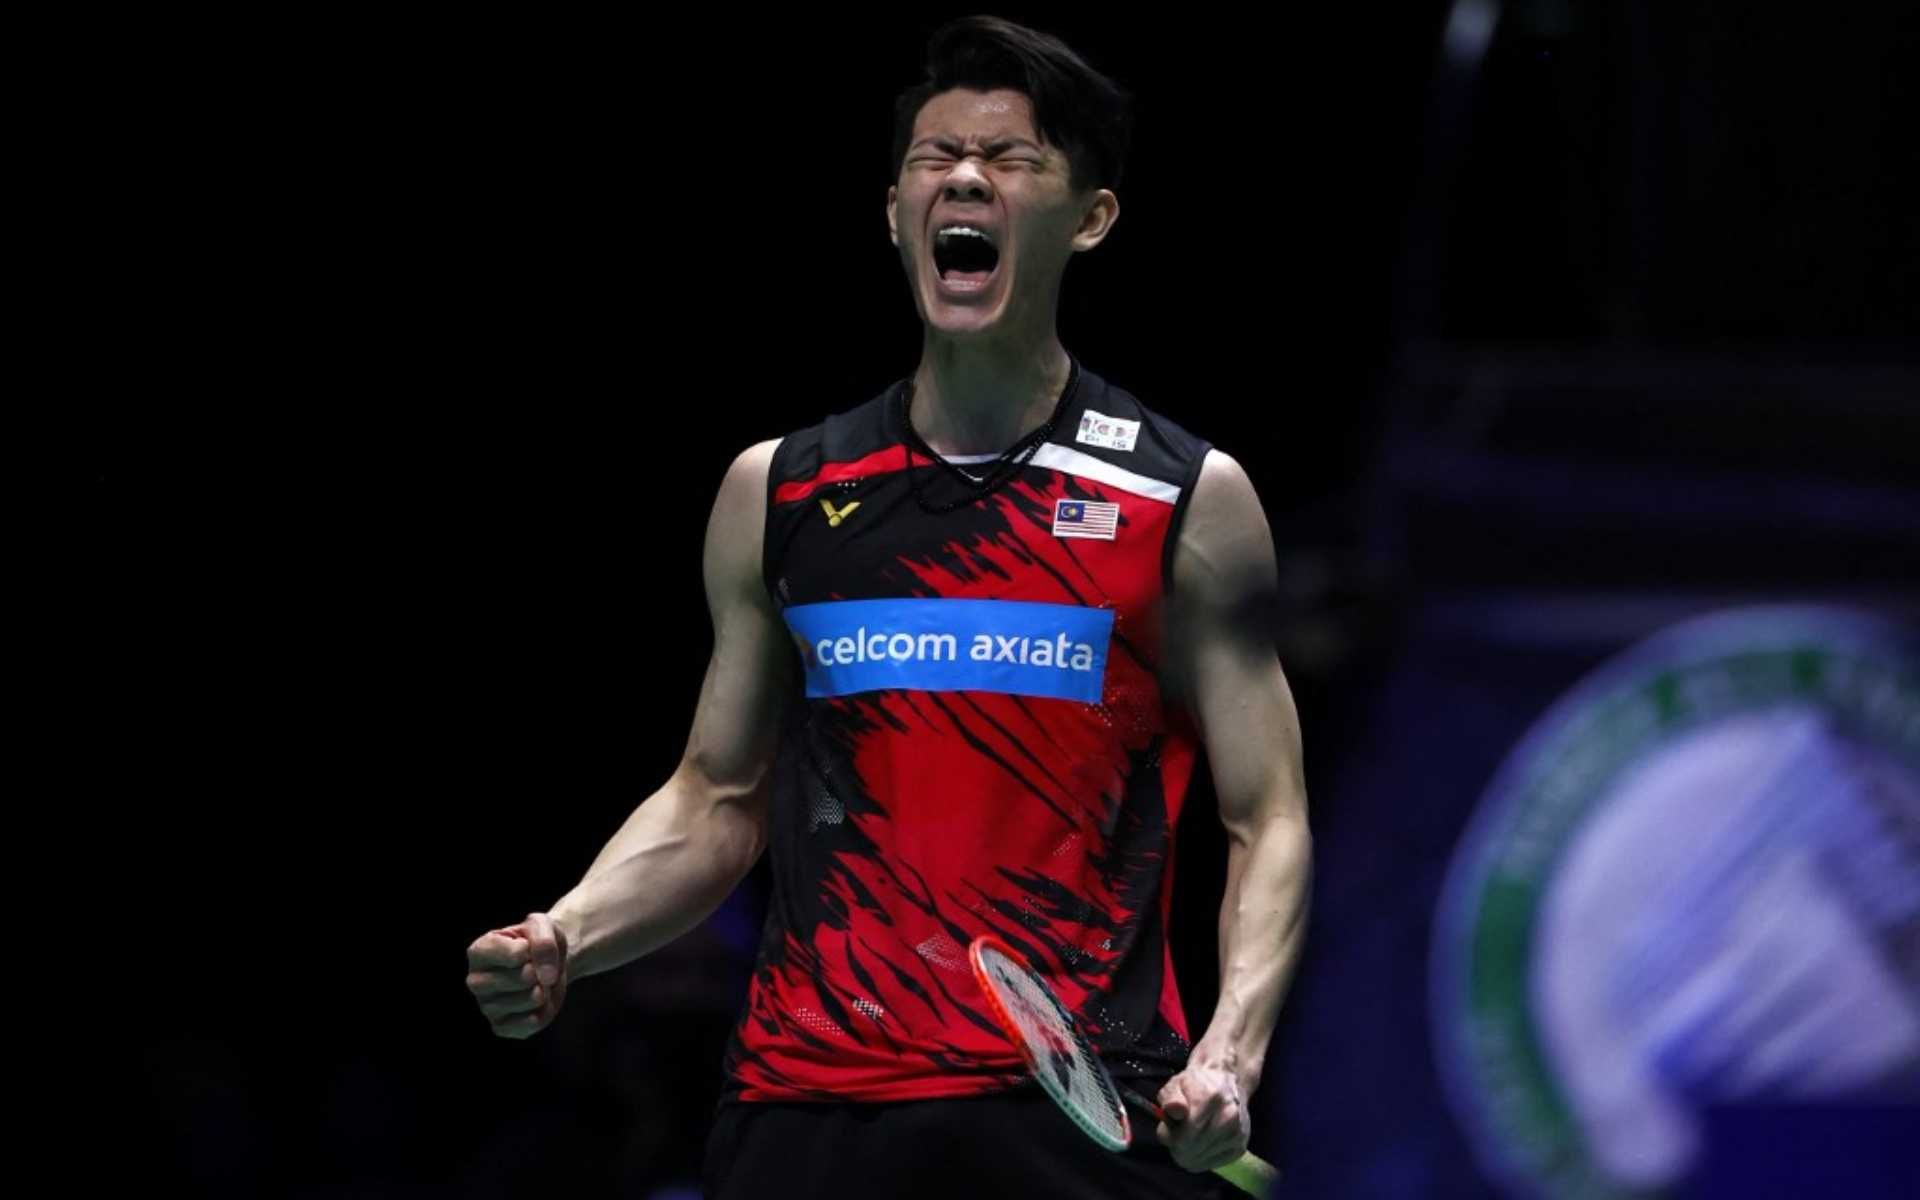 Malaysia's Lee Zii Jia celebrates winning a point after a long rally against Denmark's Viktor Axelsen during the men's singles final on the last day of the All England Open Badminton Championship at the Utilita Arena in Birmingham, central England, on March 21, 2021. (Photo by Adrian DENNIS / AFP)